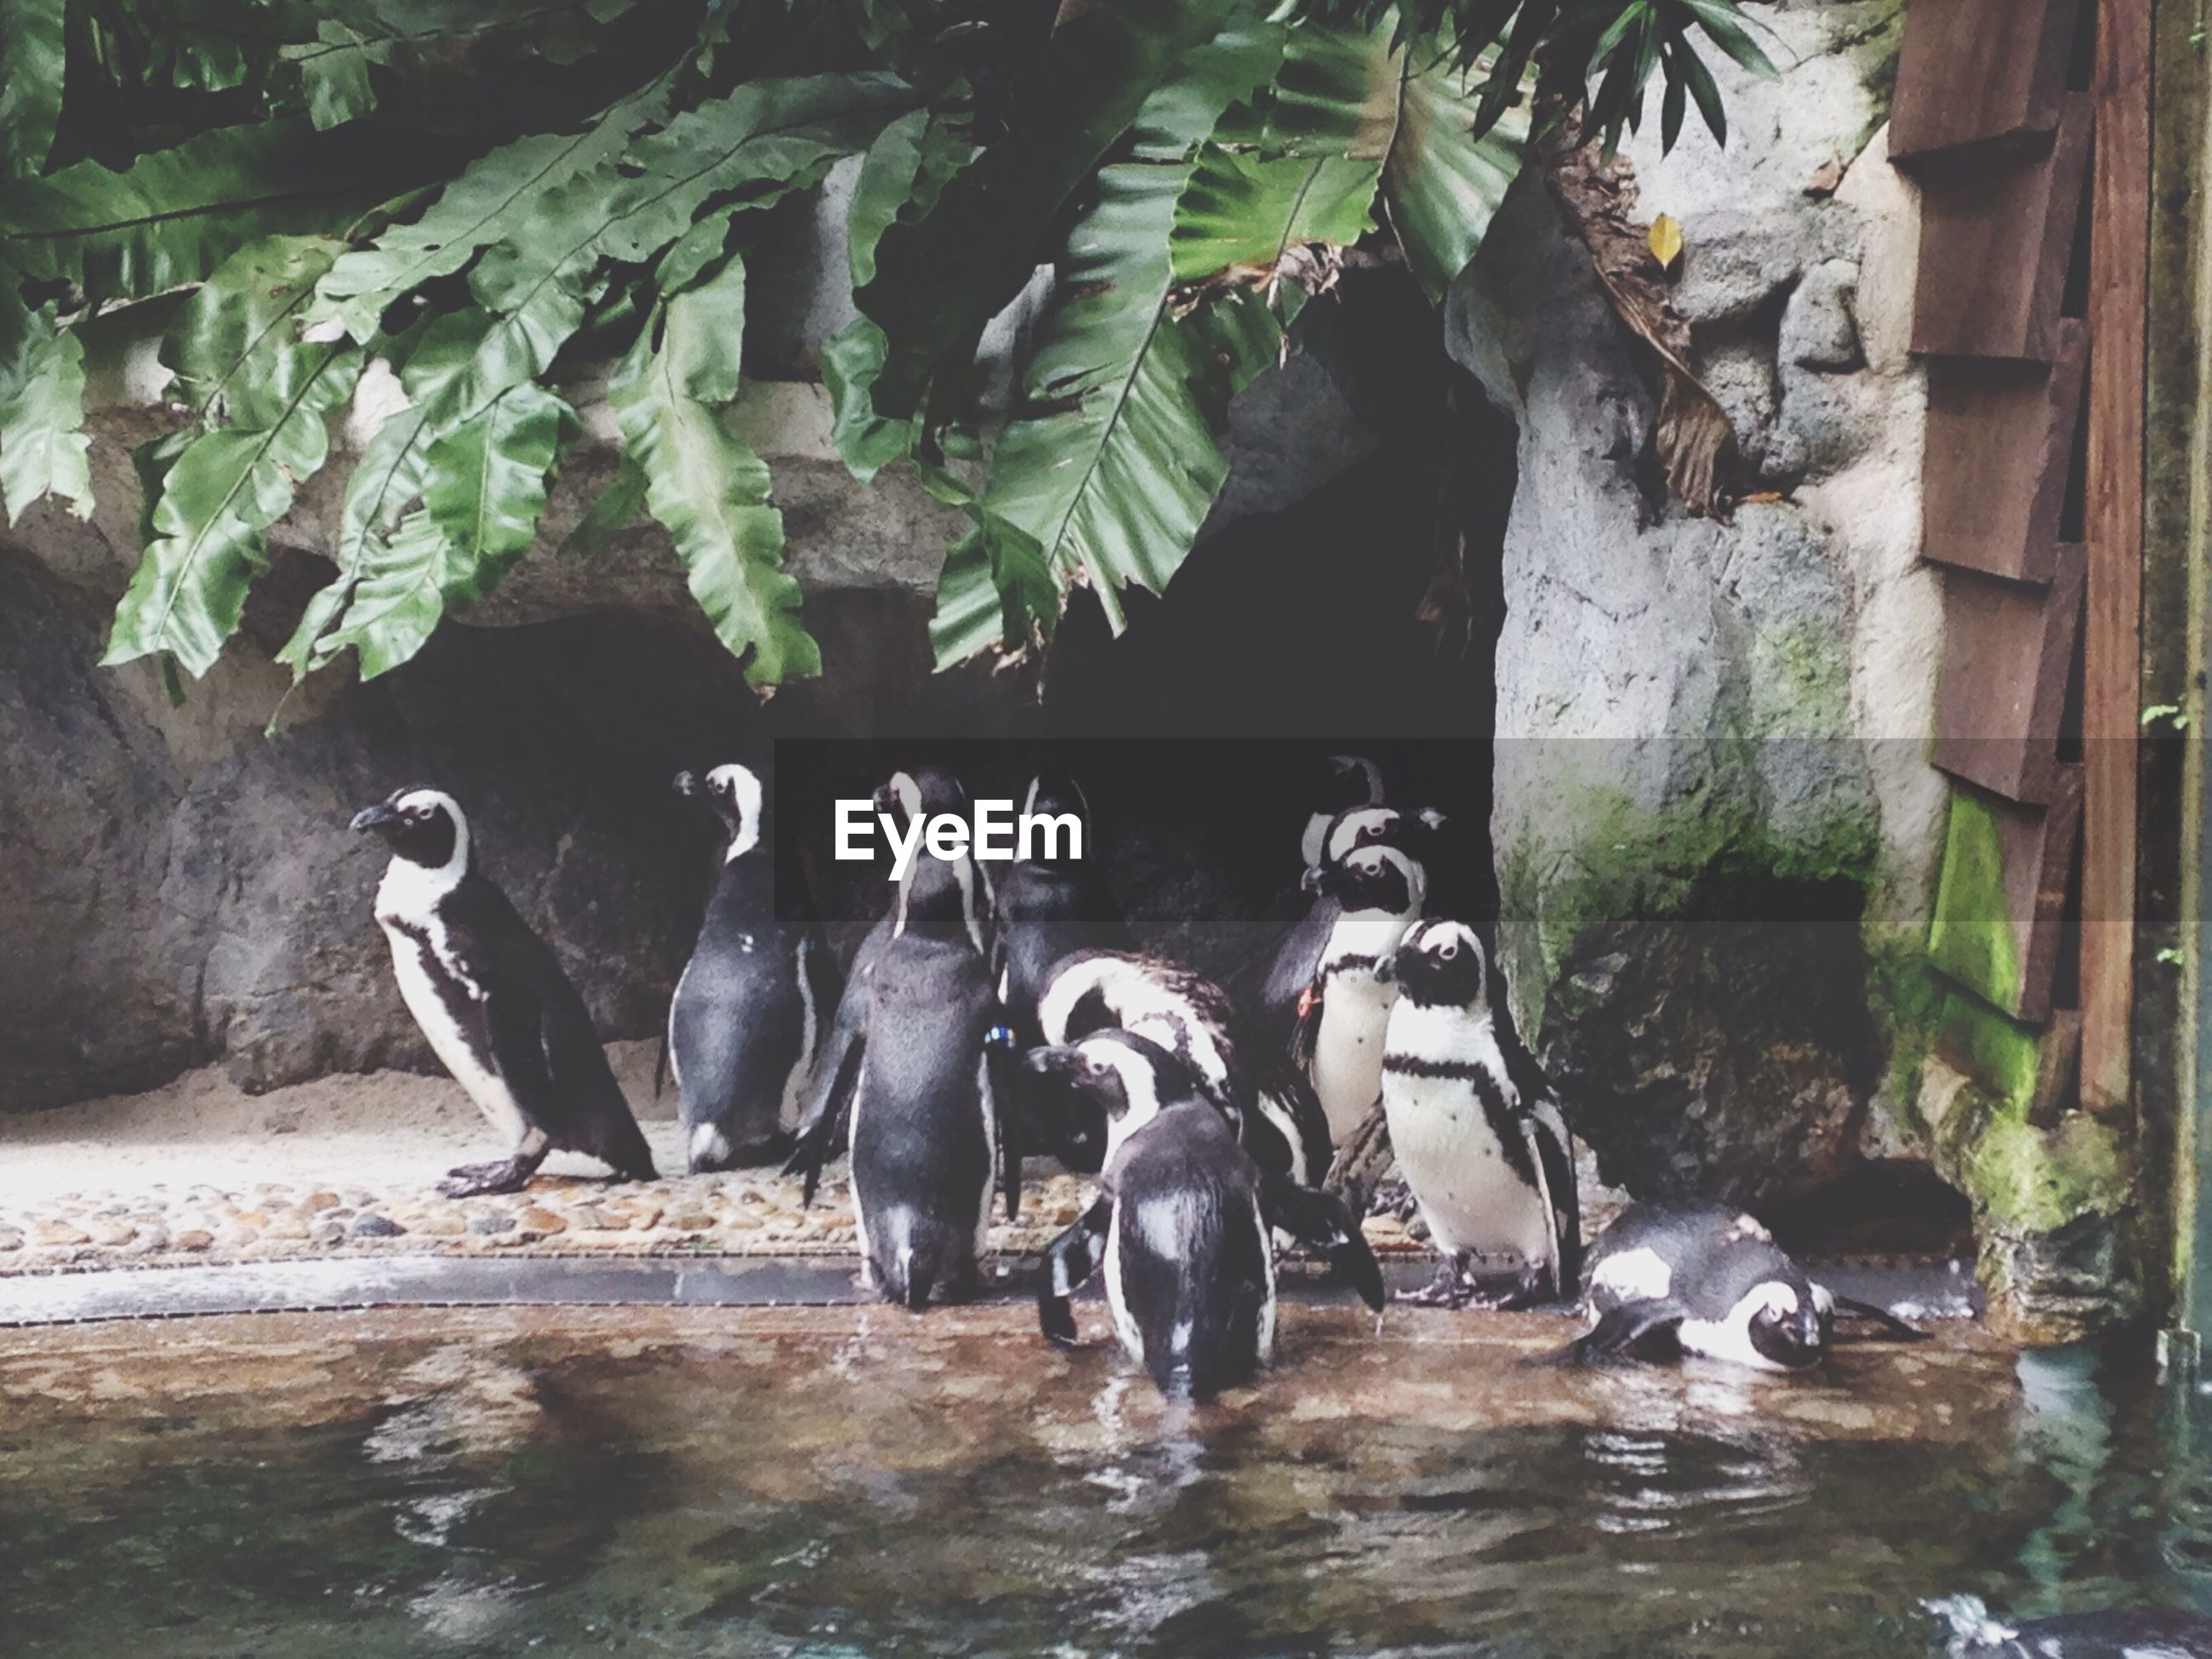 Penguins by water in zoo